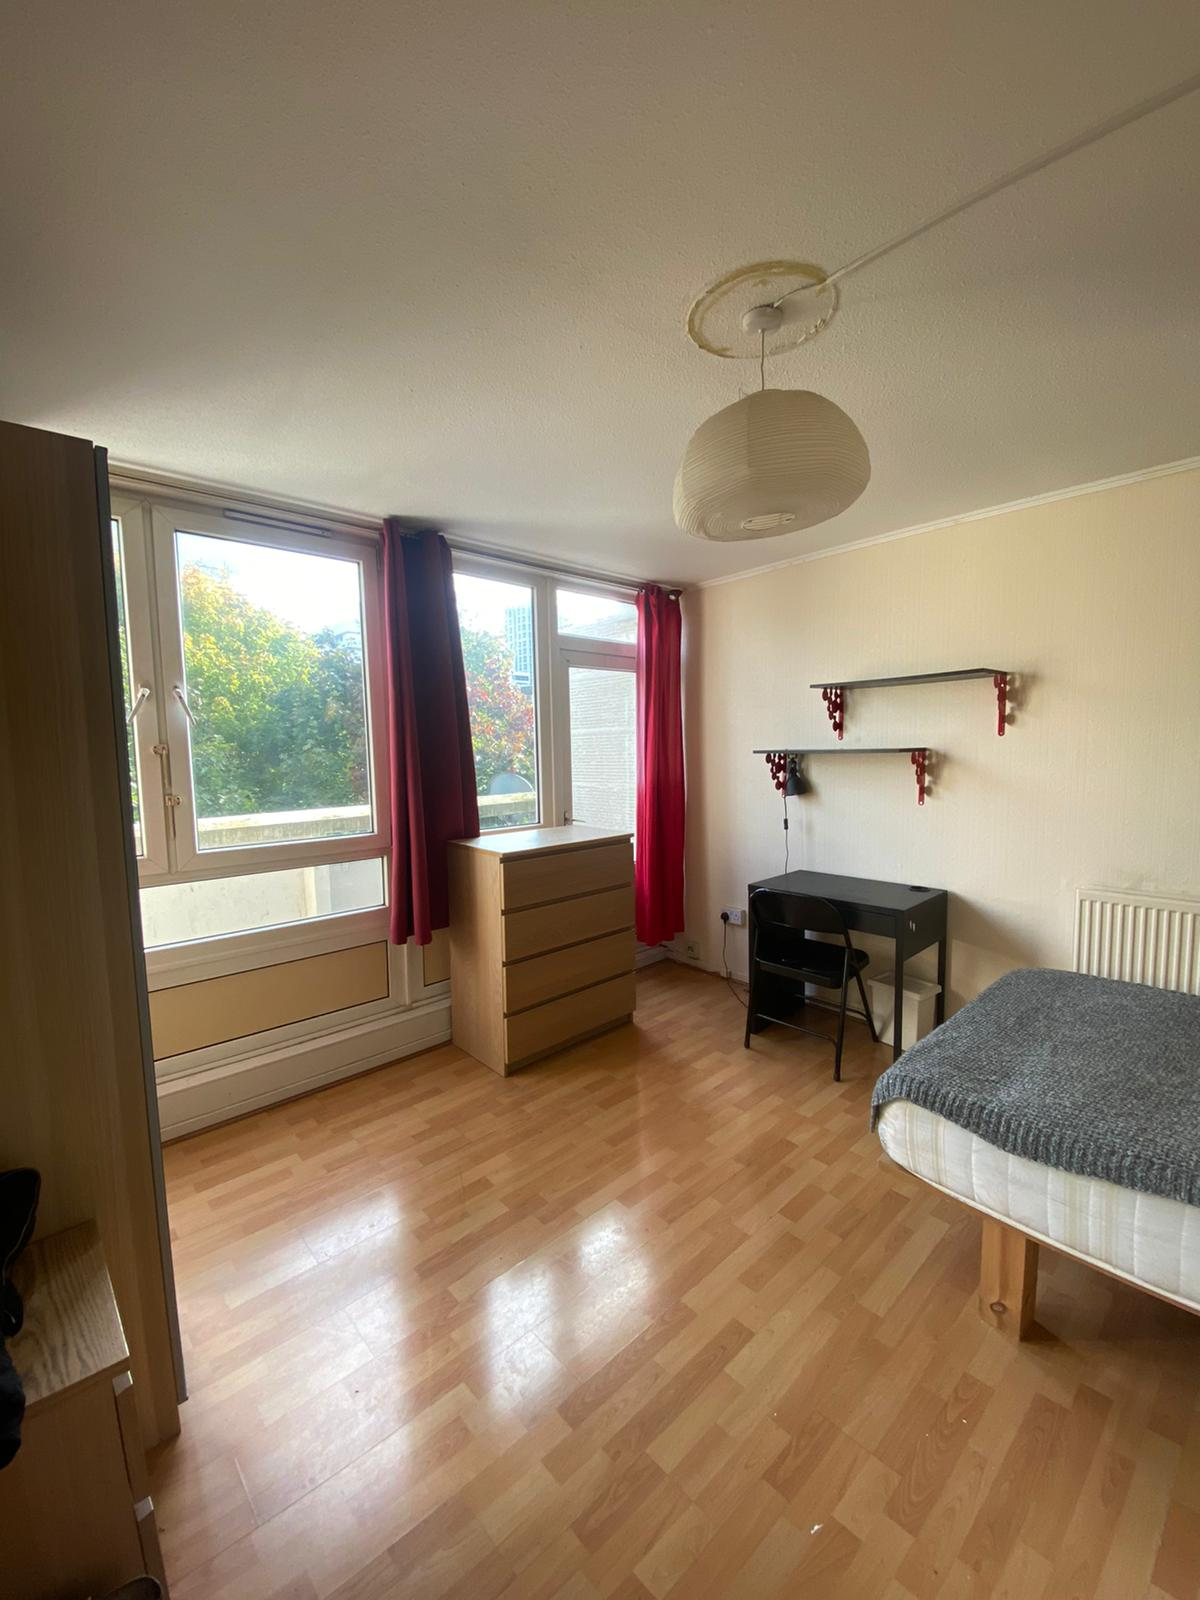 Photo 1, Single room - FOWLER in London